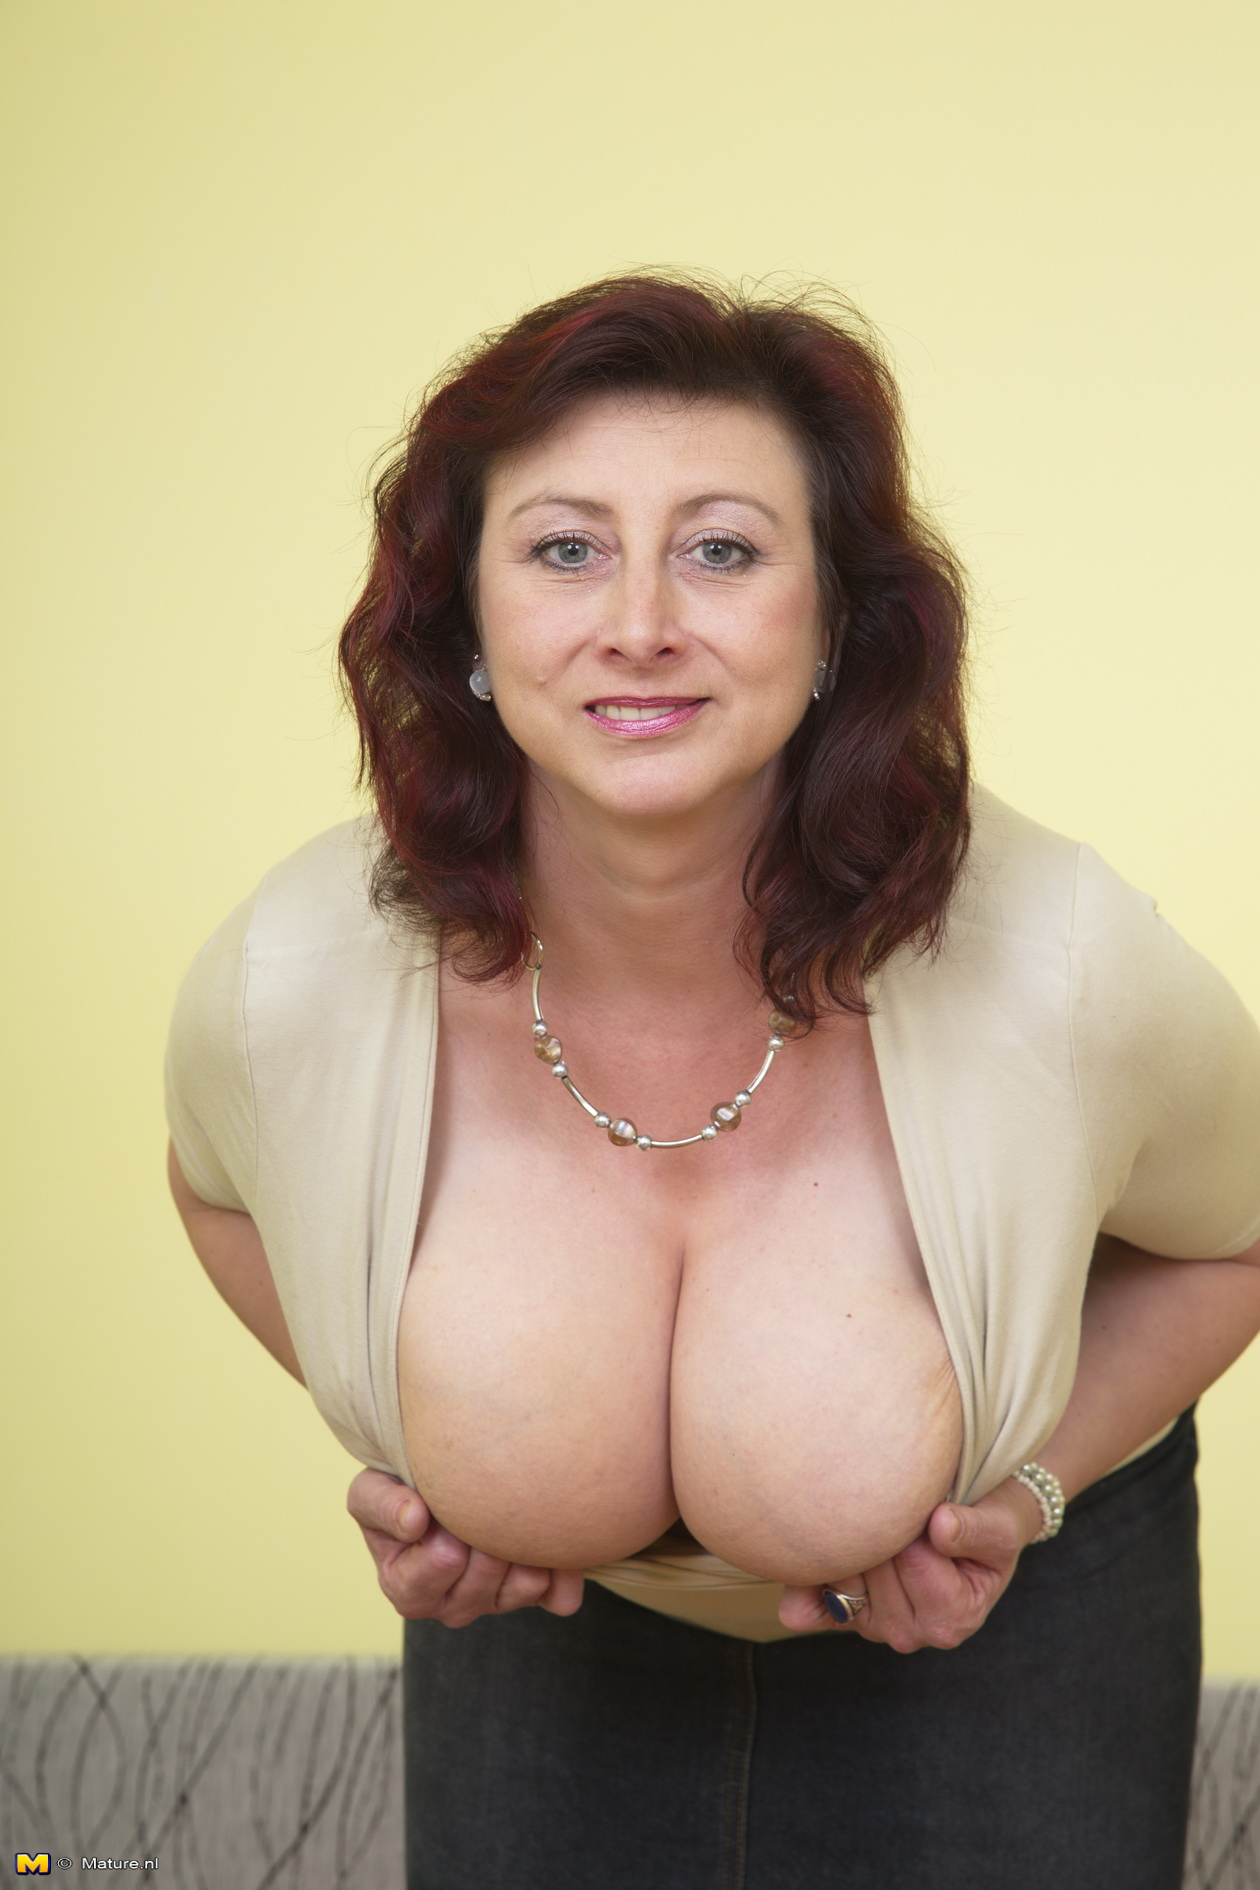 Huge breasted women pics